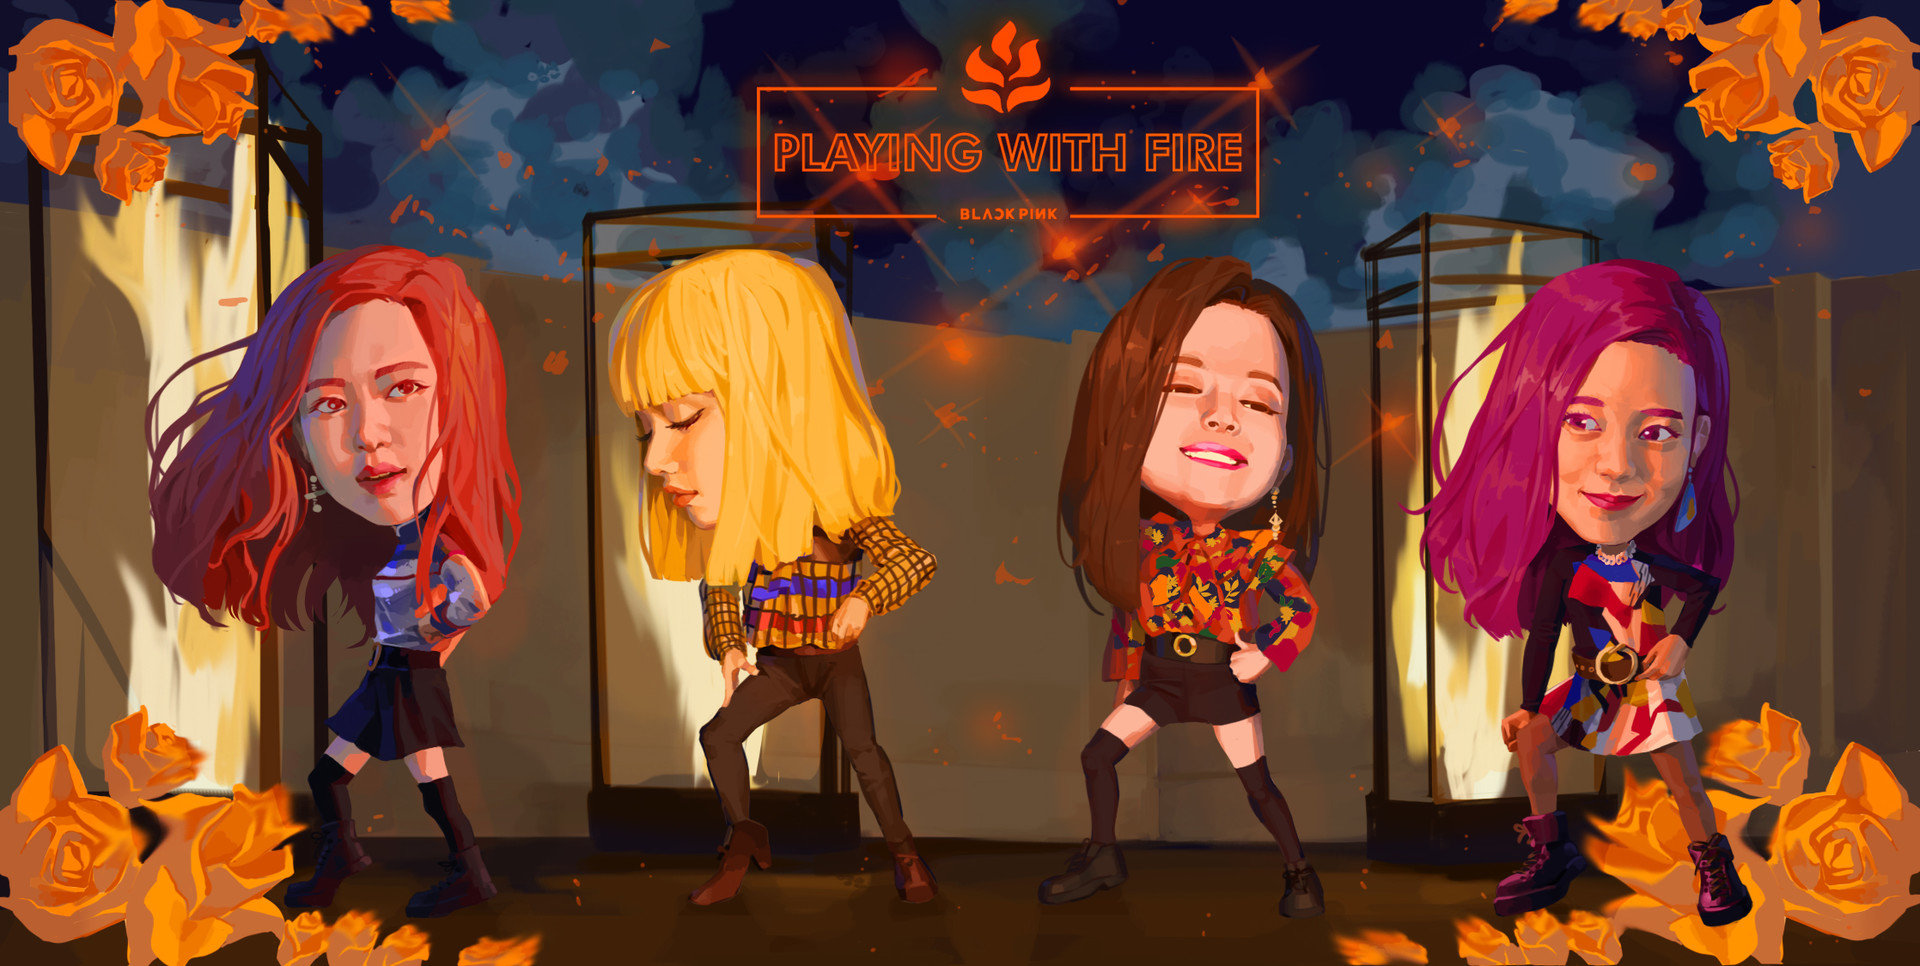 ArtStation - Black pink - Playing with fire (SD) (February